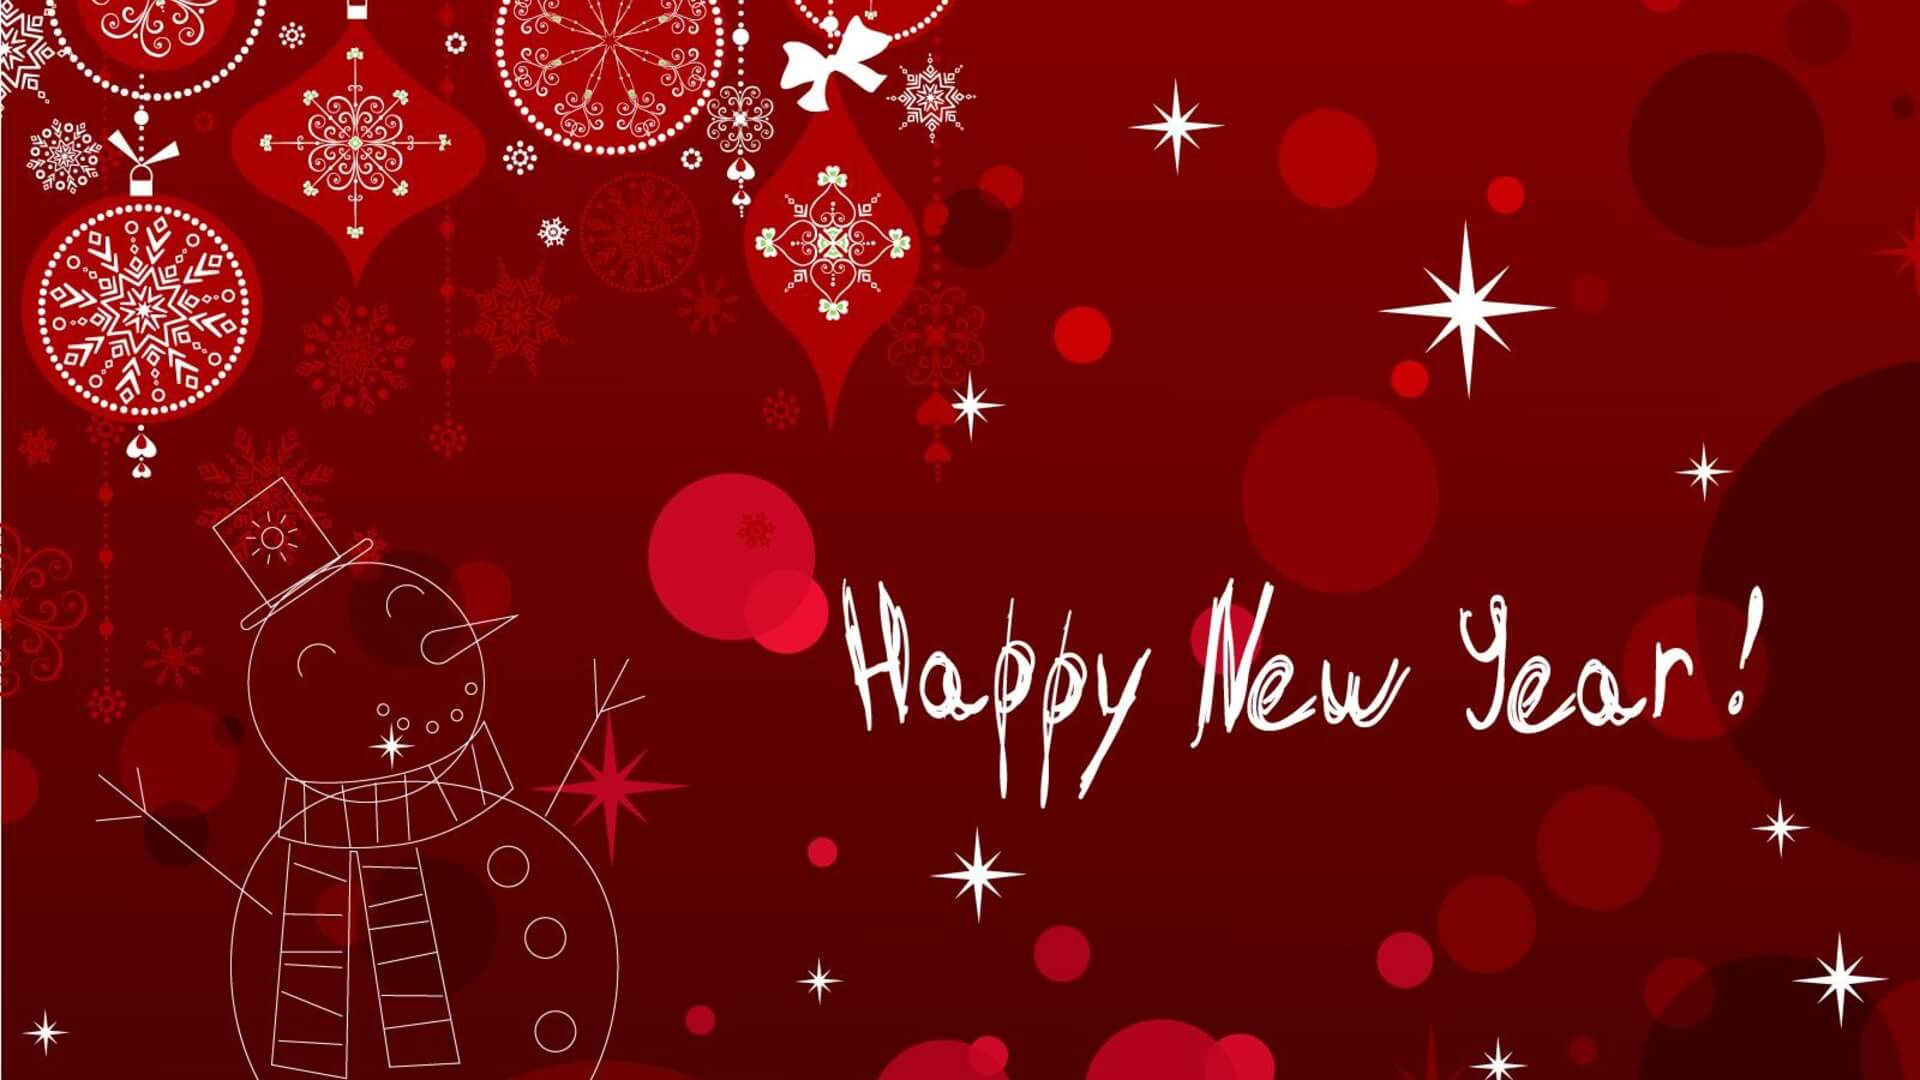 Happy new year wishes quotes sms 2018 ienglish status happy new year wishes quotes sms 2018 m4hsunfo